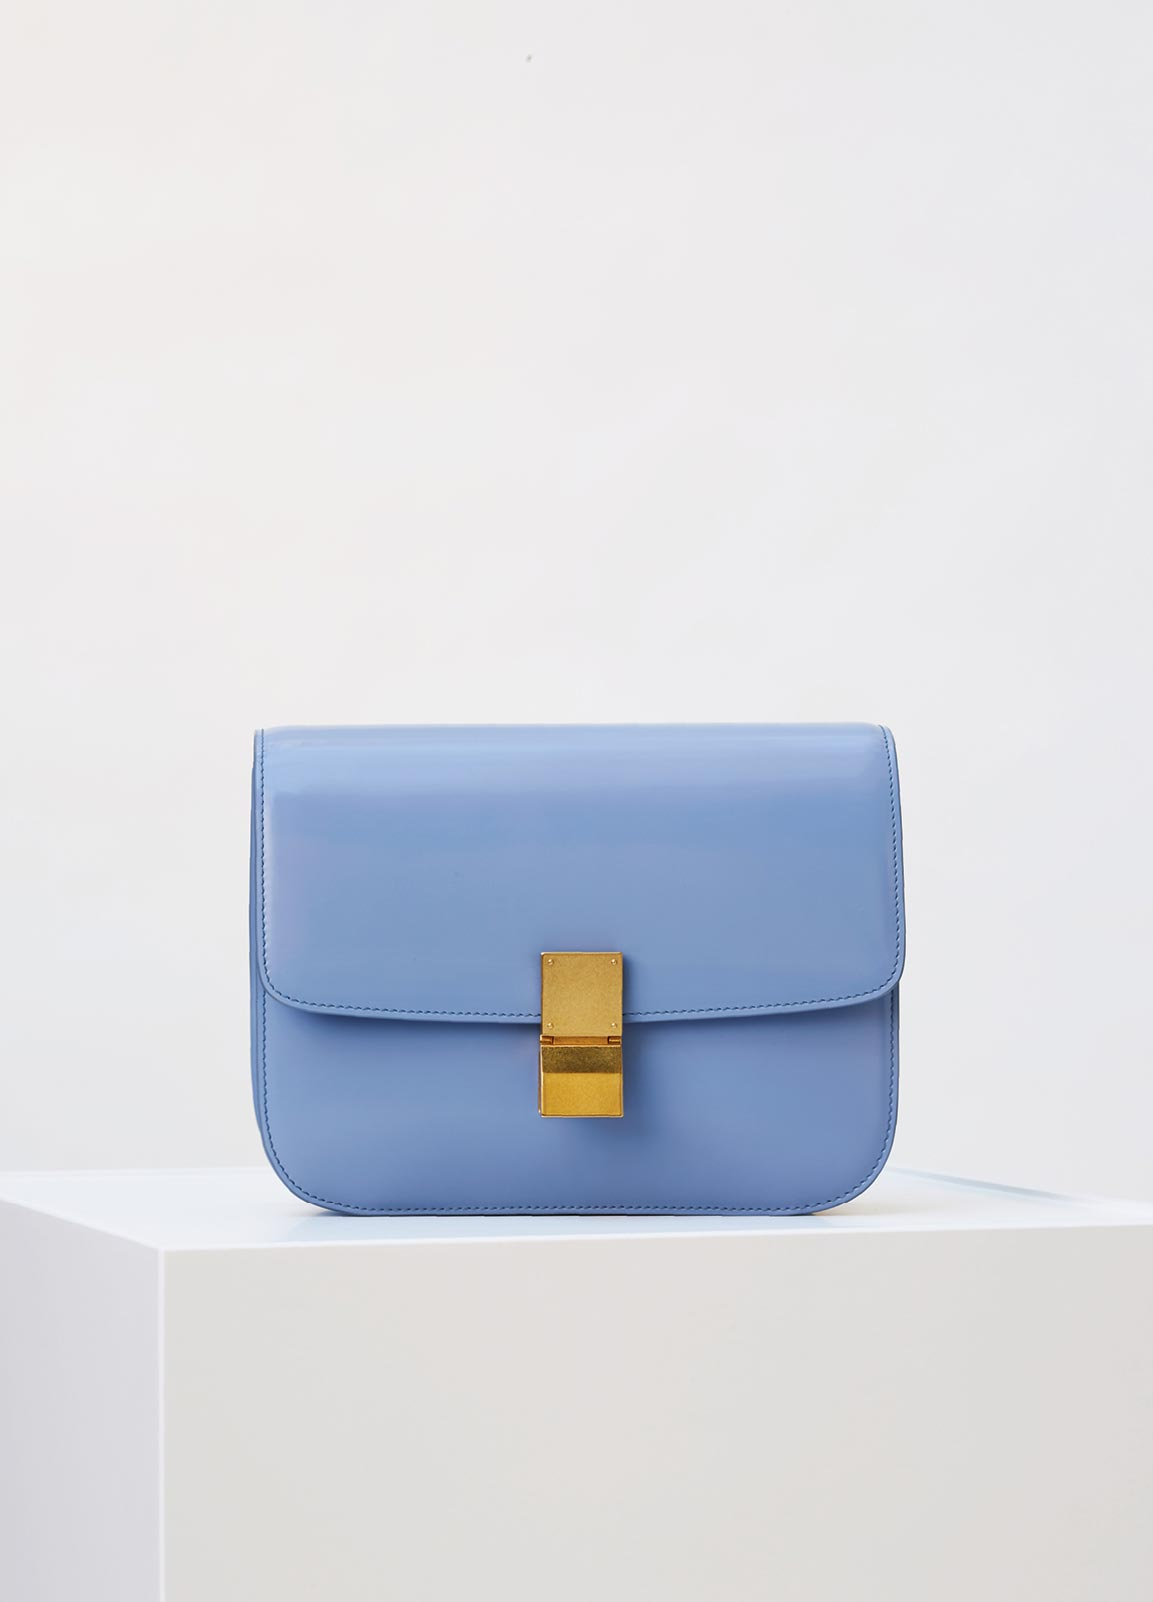 eb66466cc46c3 Celine Winter 2016 Bag Collection featuring Pastels